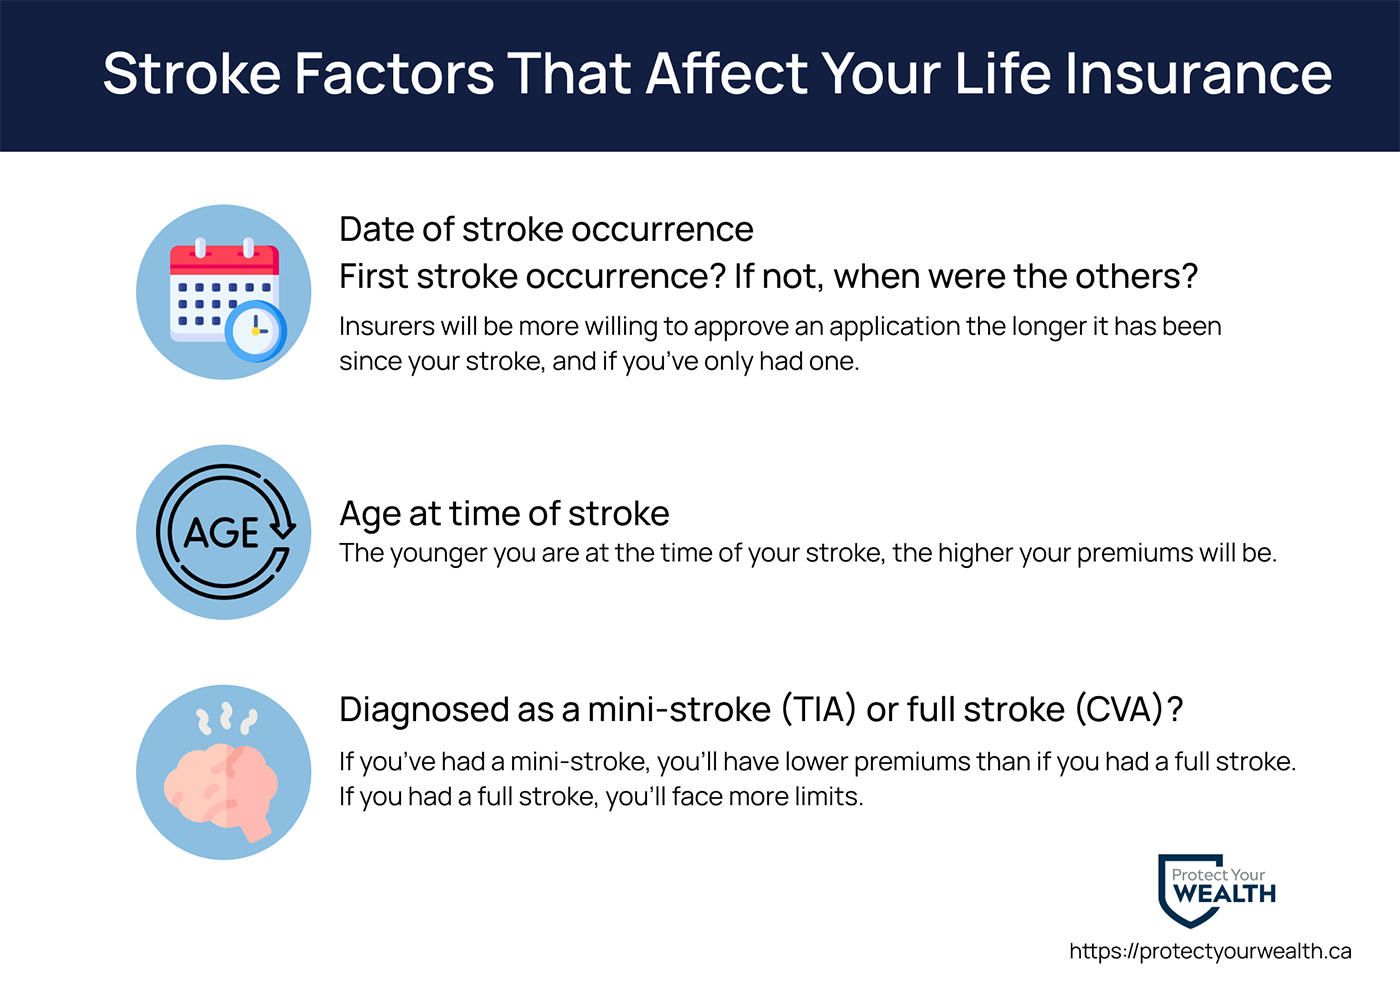 Some stroke factors that life insurance companies consider are the date of the stroke and if it is your first, the age at the time of your stroke, and if it was diagnosed as a mini-stroke or full stroke.